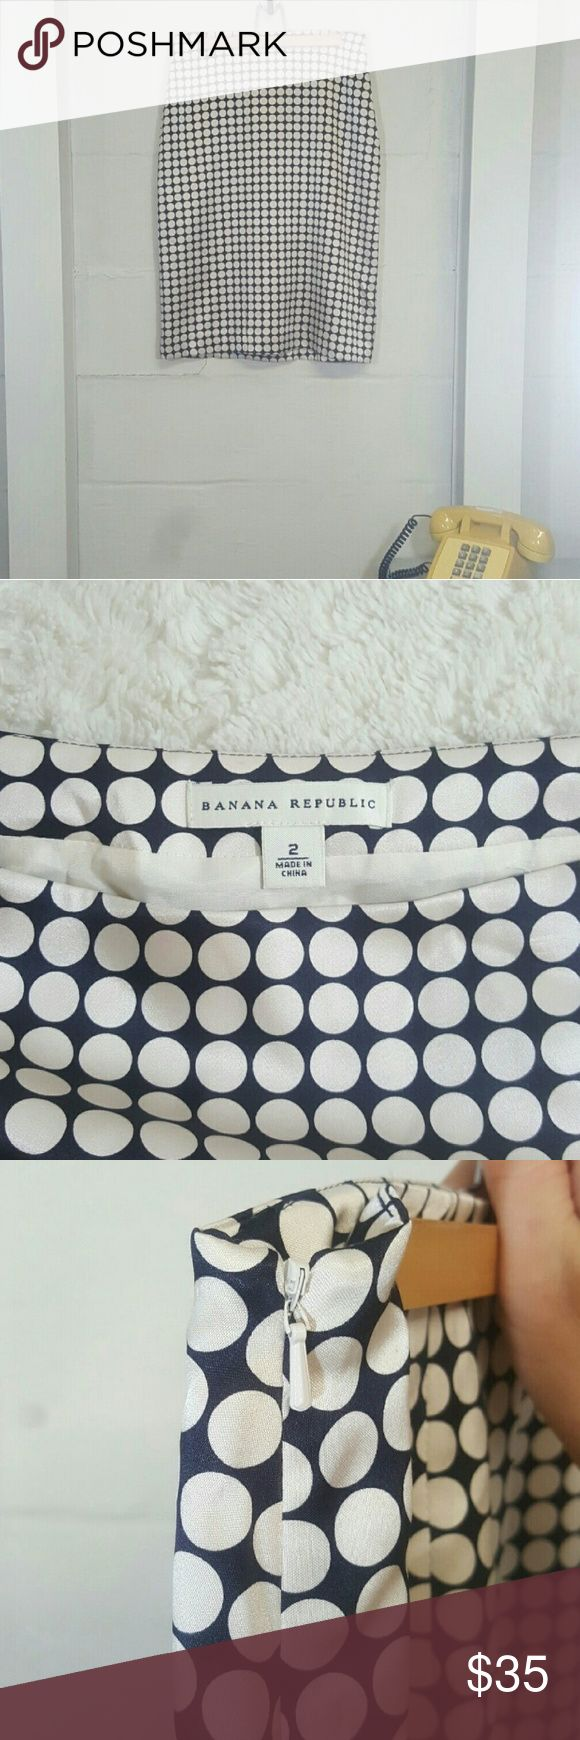 Banana Republic pencil skirt size 2 This is a Banana Republic pencil skirt, off white with navy blue polka dots. Shell is 100% silk. Linning is 100% acetate. Like new condition. Size 2. Measurements included in the photos. Smoke-free pet-free. No rips stains snags or tears. Great for the office. Dress up or dress down. Skirt has a side zipper. Zipper intact. Banana Republic Skirts